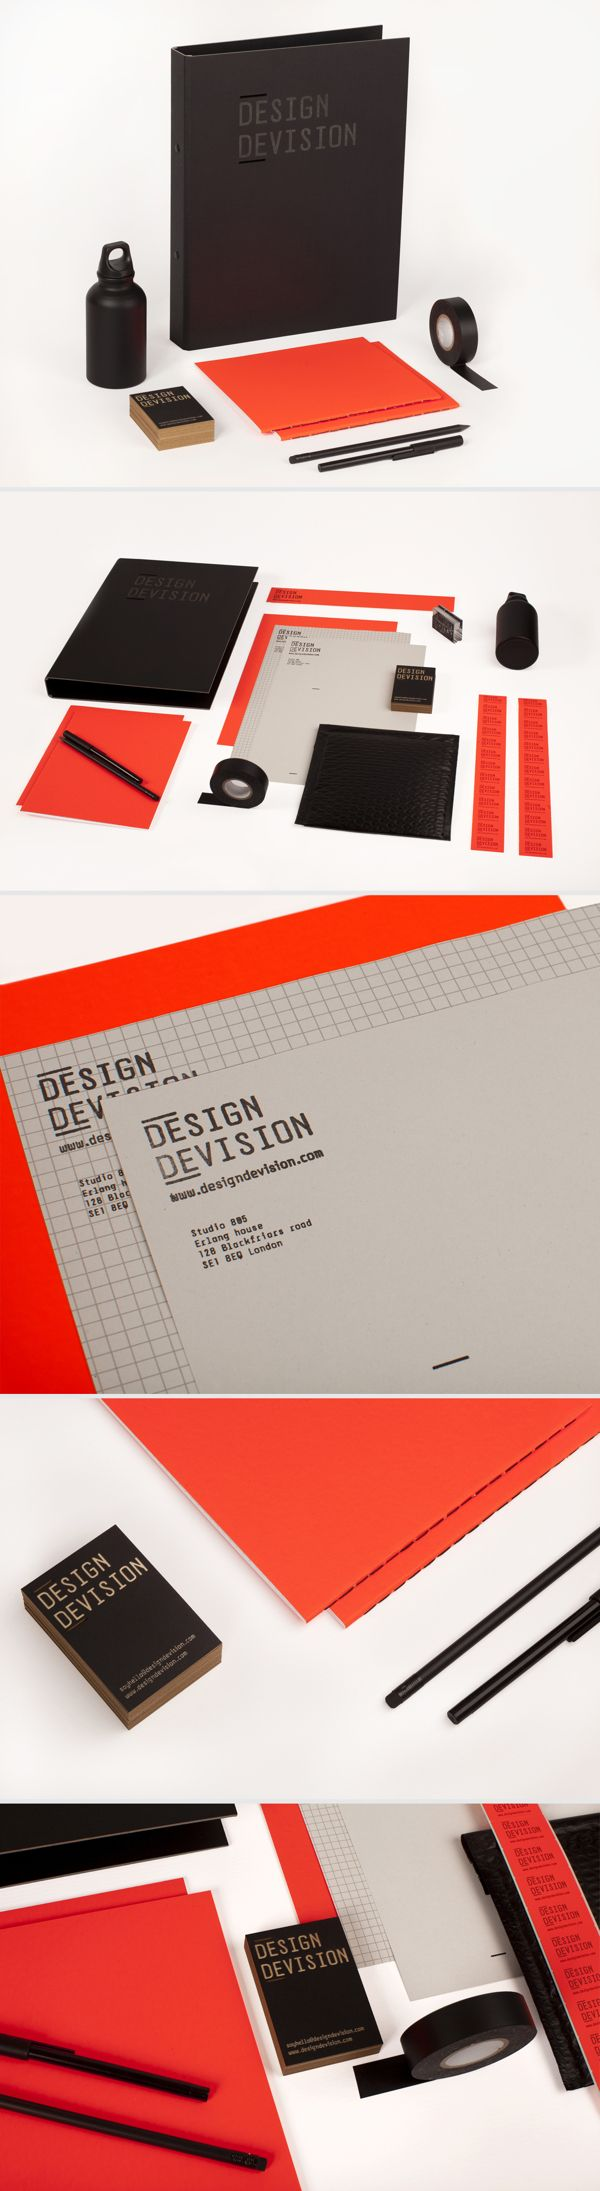 Design Devision Stationery on Behance